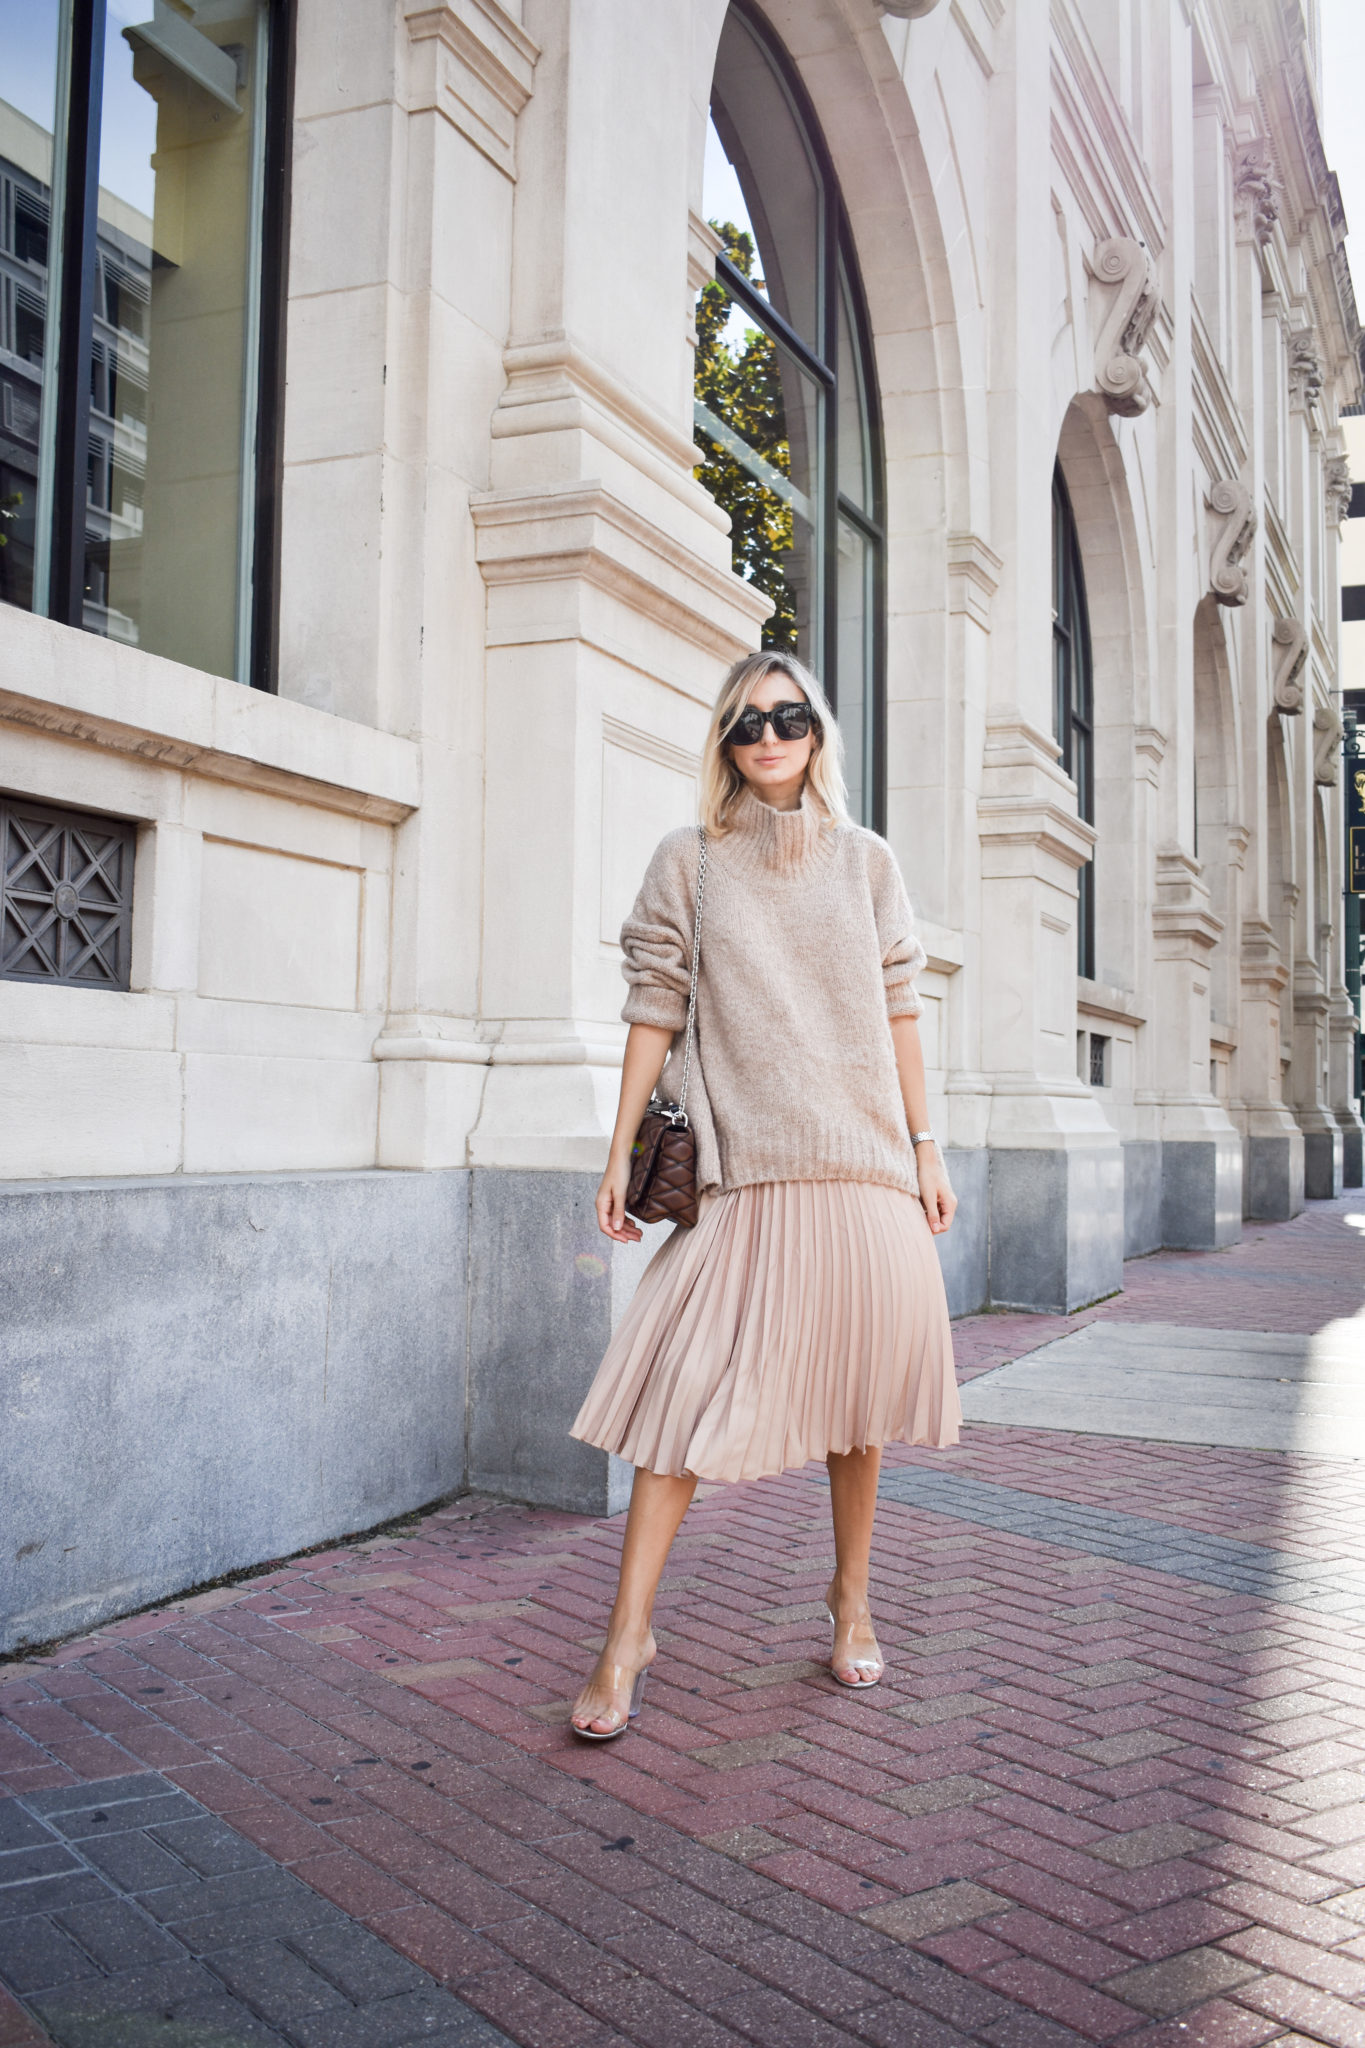 Beige Oversized Sweater and Pleated Skirt - Casiraghi Style